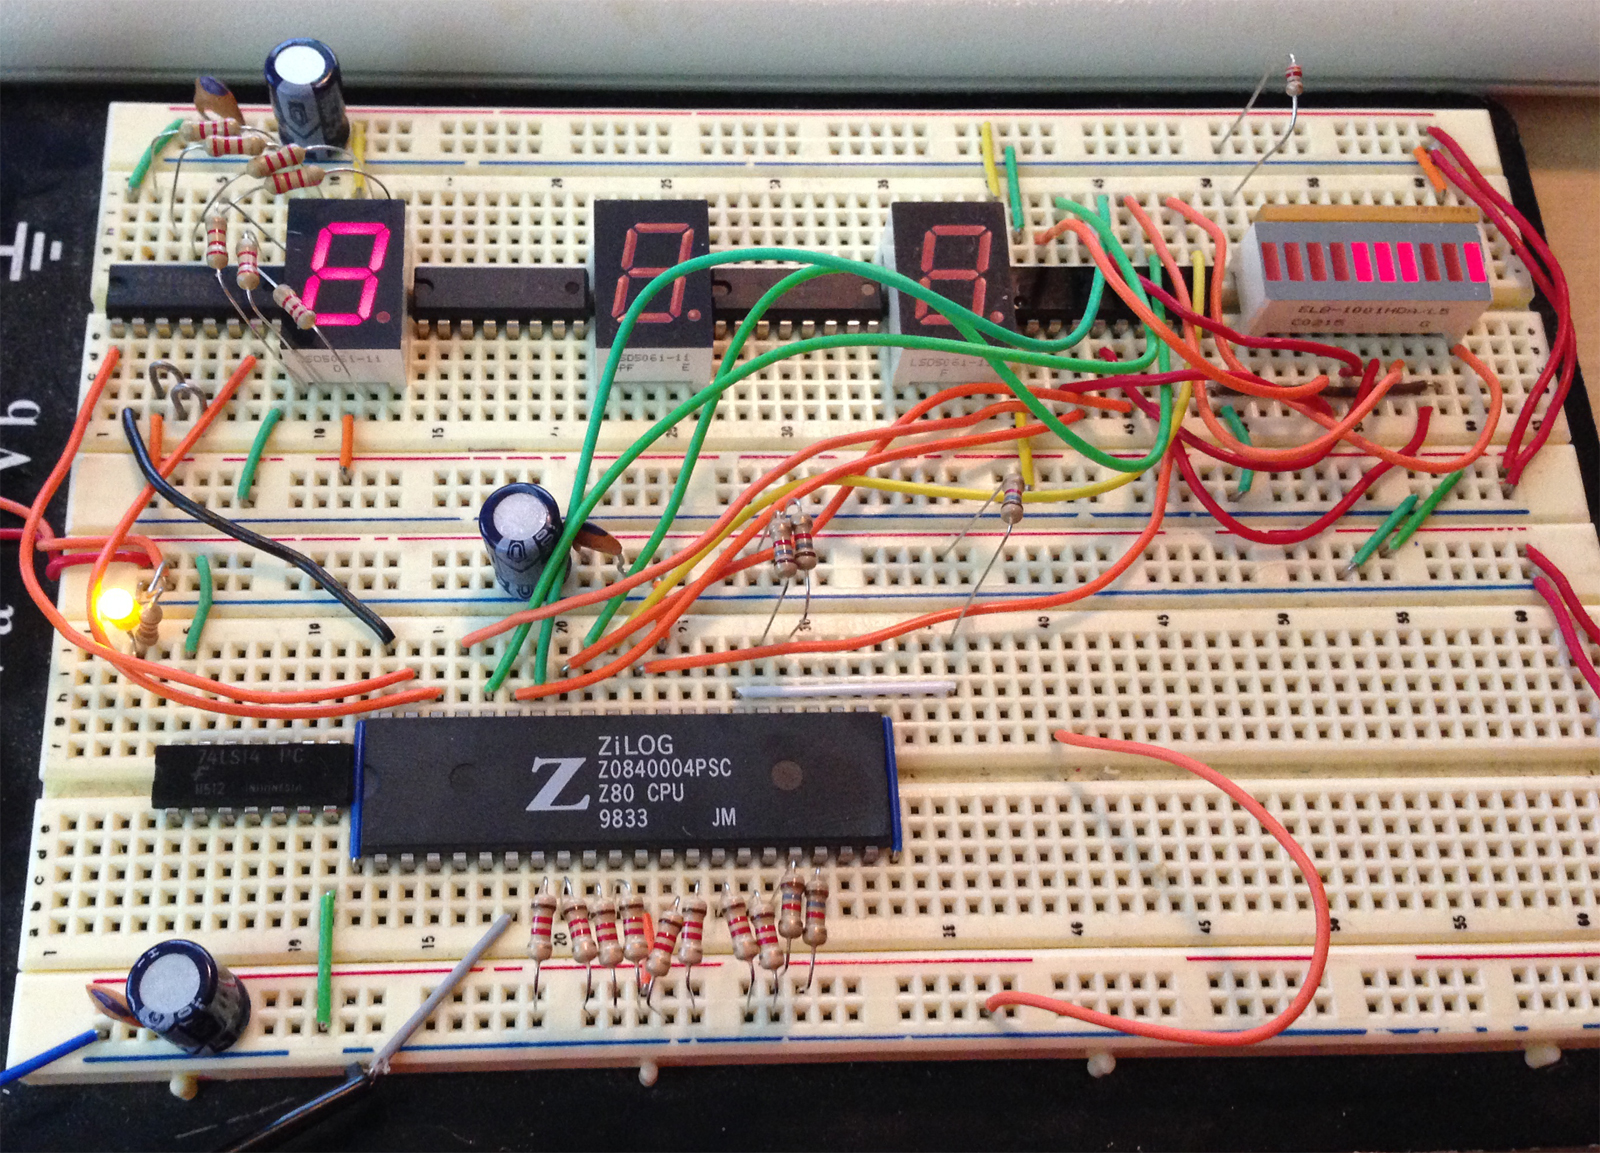 Z80 Computer and Assembler Adventures - Jack's Projects and Notes